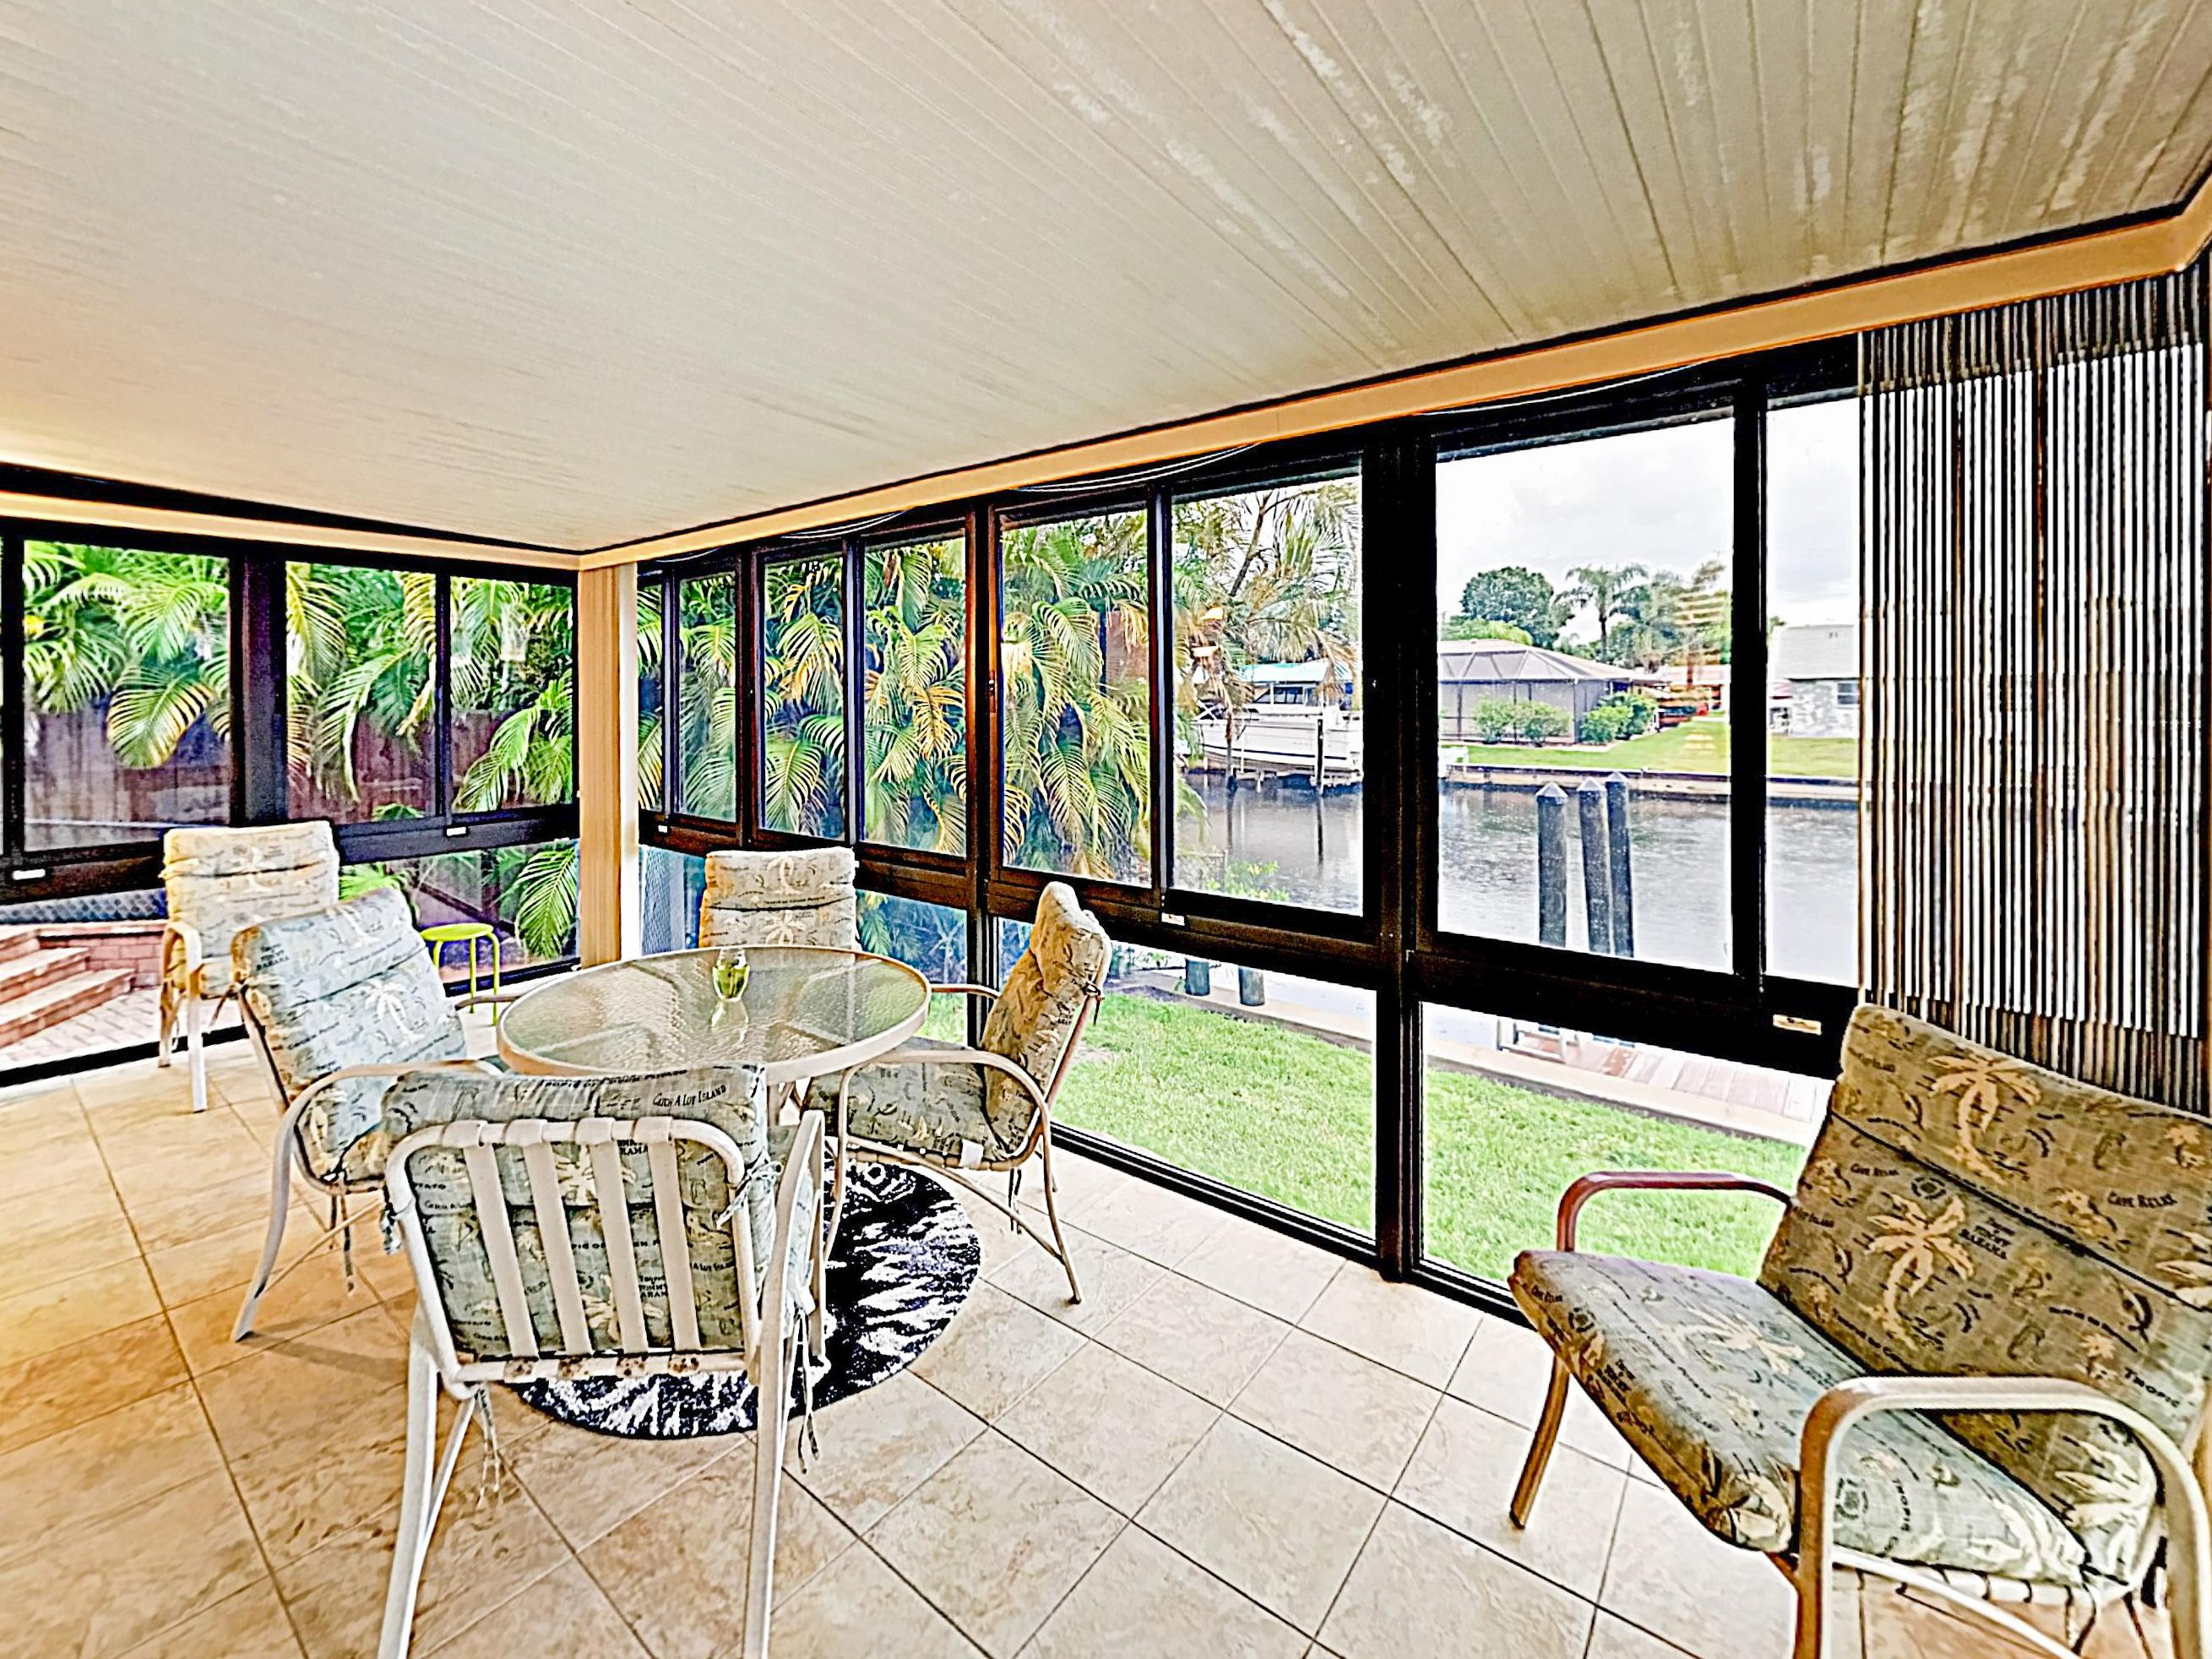 Welcome to North Fort Myers! This waterfront home is professionally managed by TurnKey Vacation Rentals.